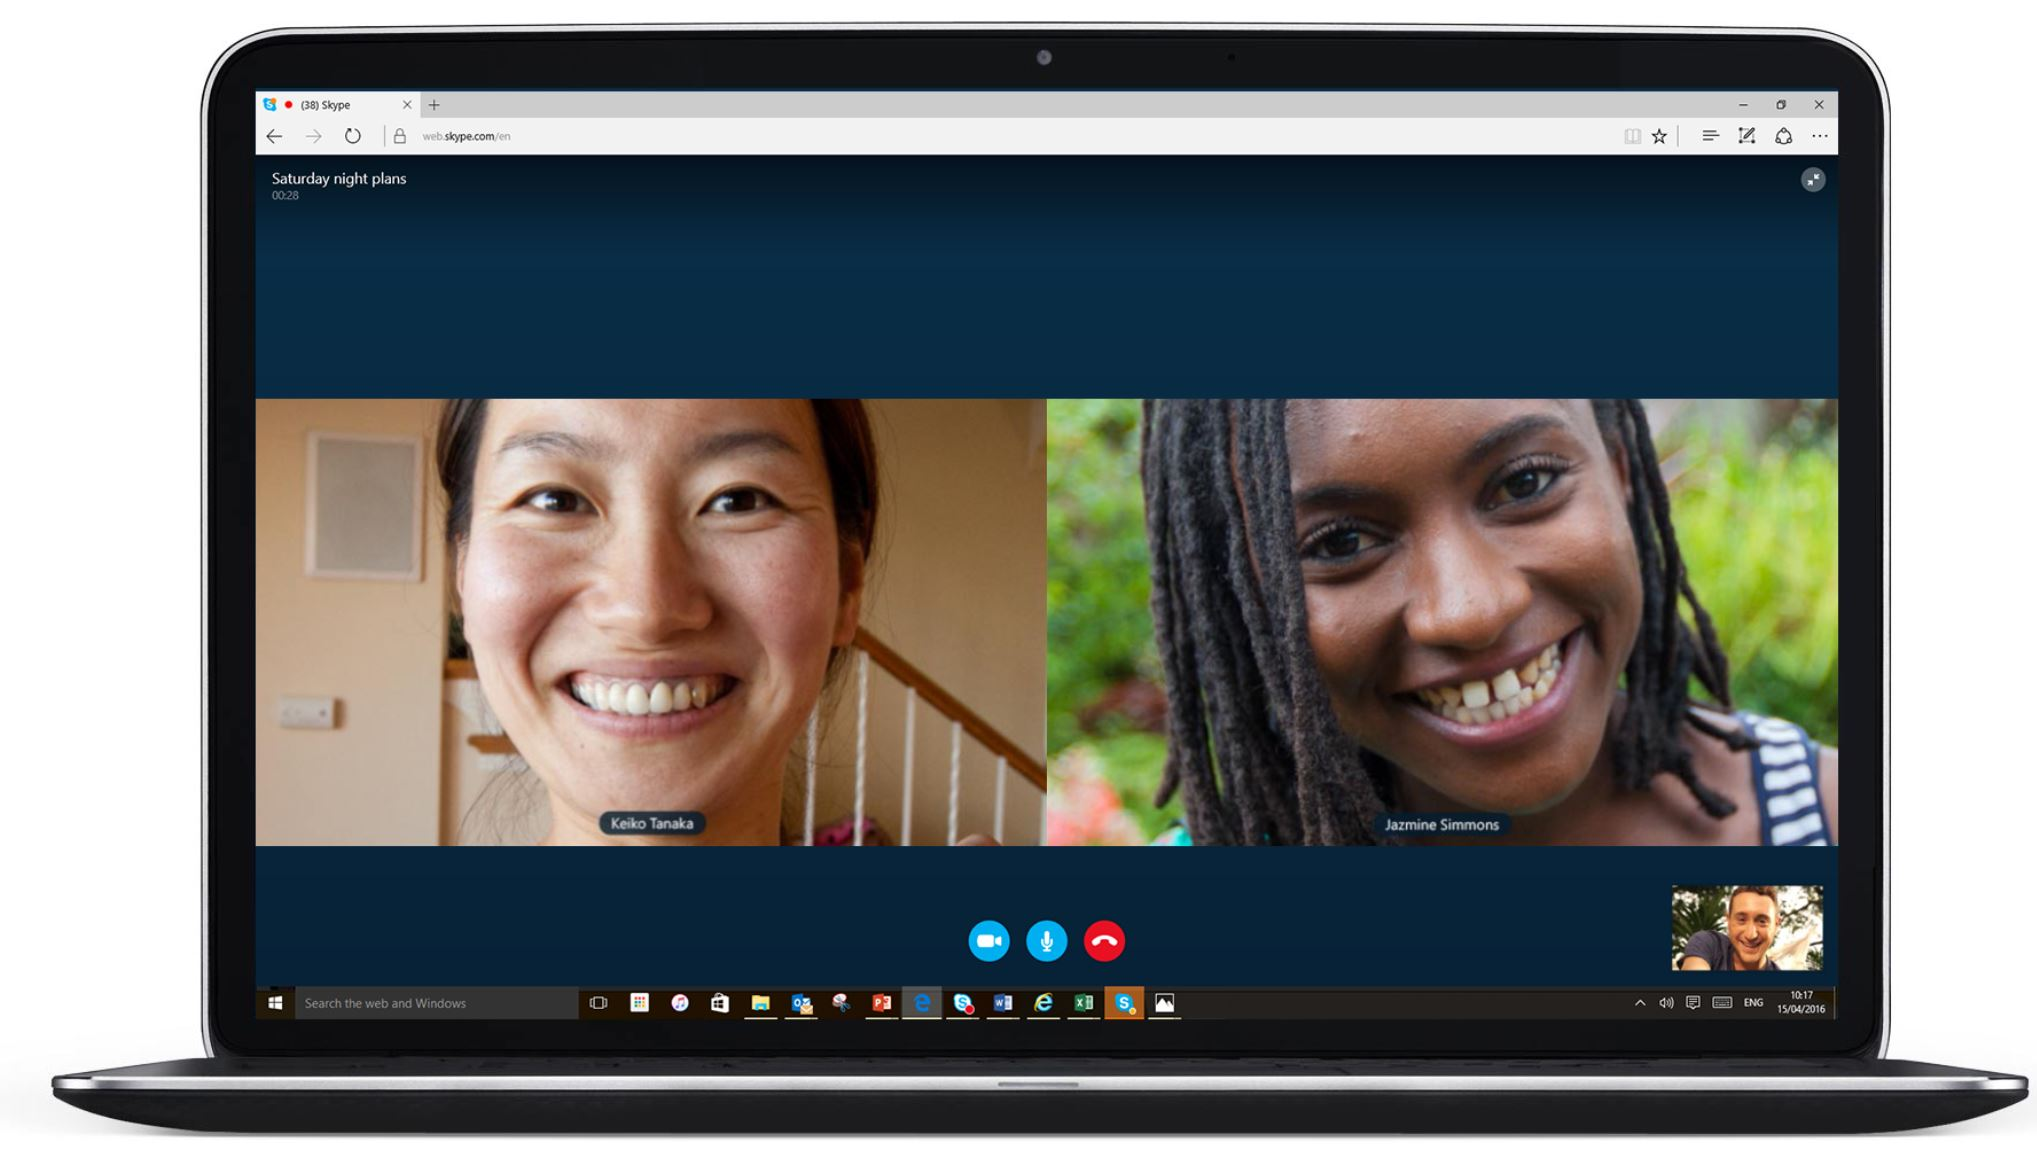 How to make whatsapp video call from laptop to mobile